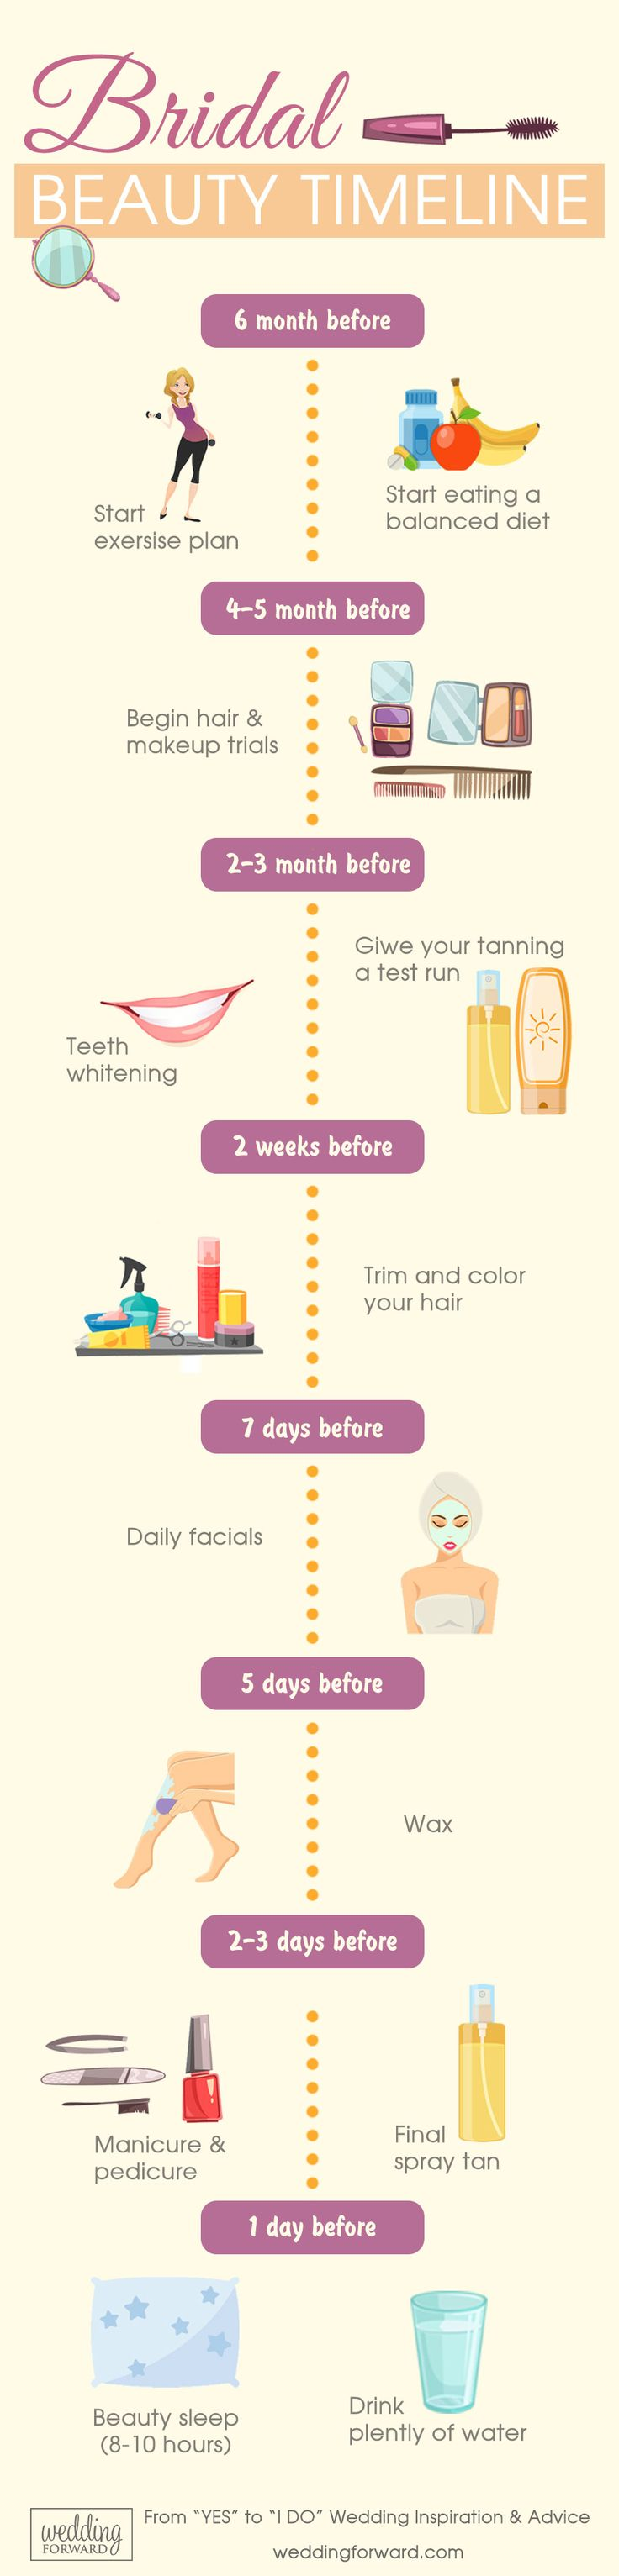 Bridal Beauty Timeline From Engagement To Wedding Day ❤ See more: http://www.weddingforward.com/bridal-beauty-timeline-engagement-wedding-day/ #weddings